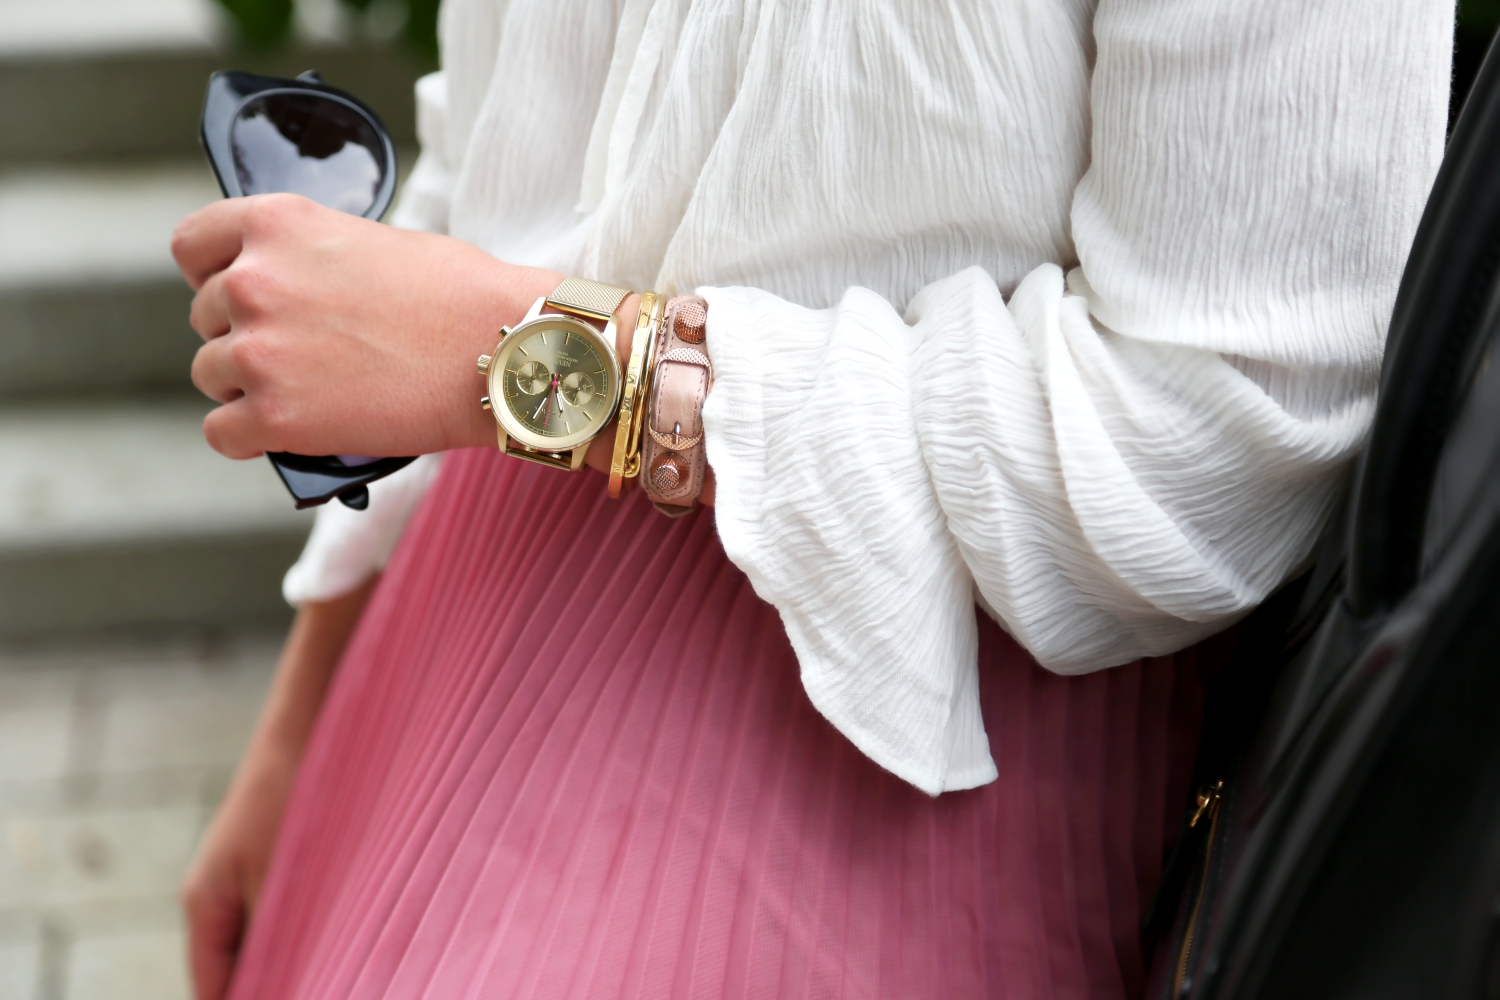 outfit-pleated-skirt-triwa-watch-armparty-white-blouse-karen-walker-sunglasses